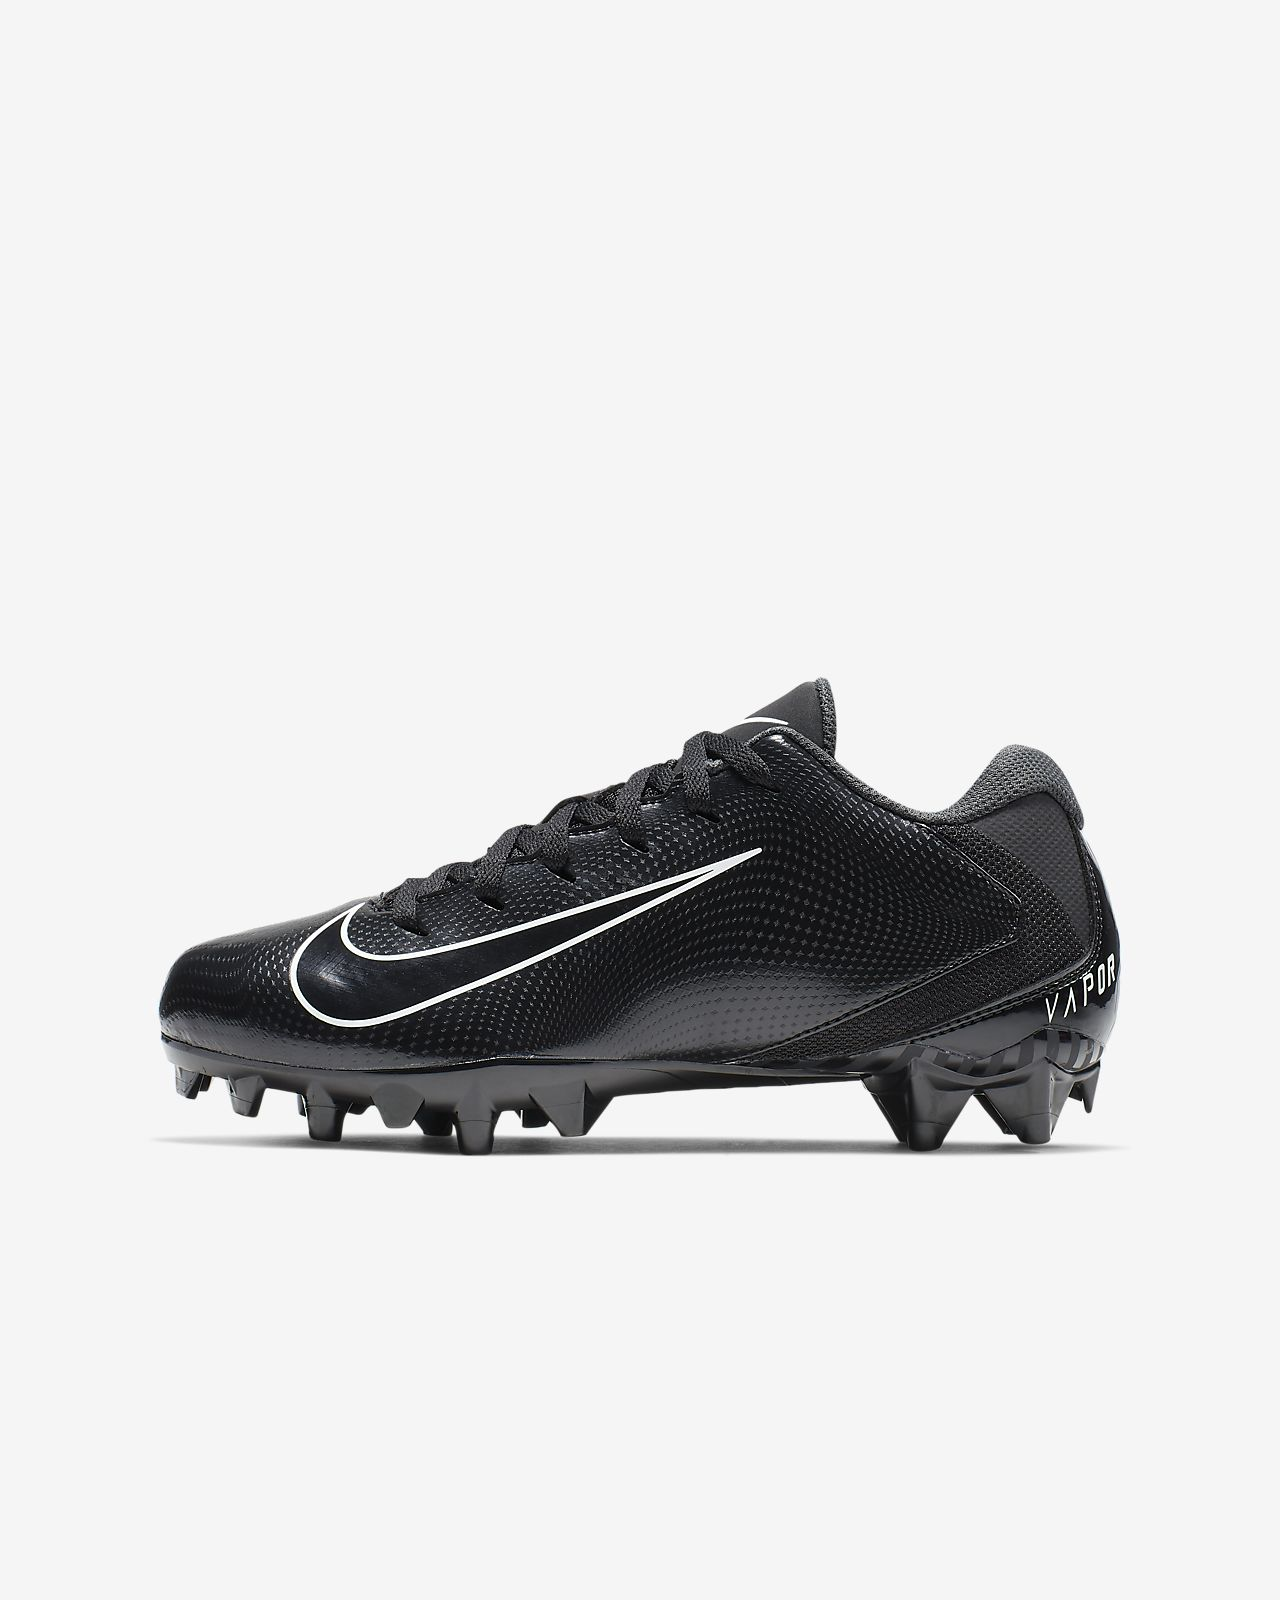 Nike Vapor Untouchable Varsity 3 Little/Big Kids' Football Cleat